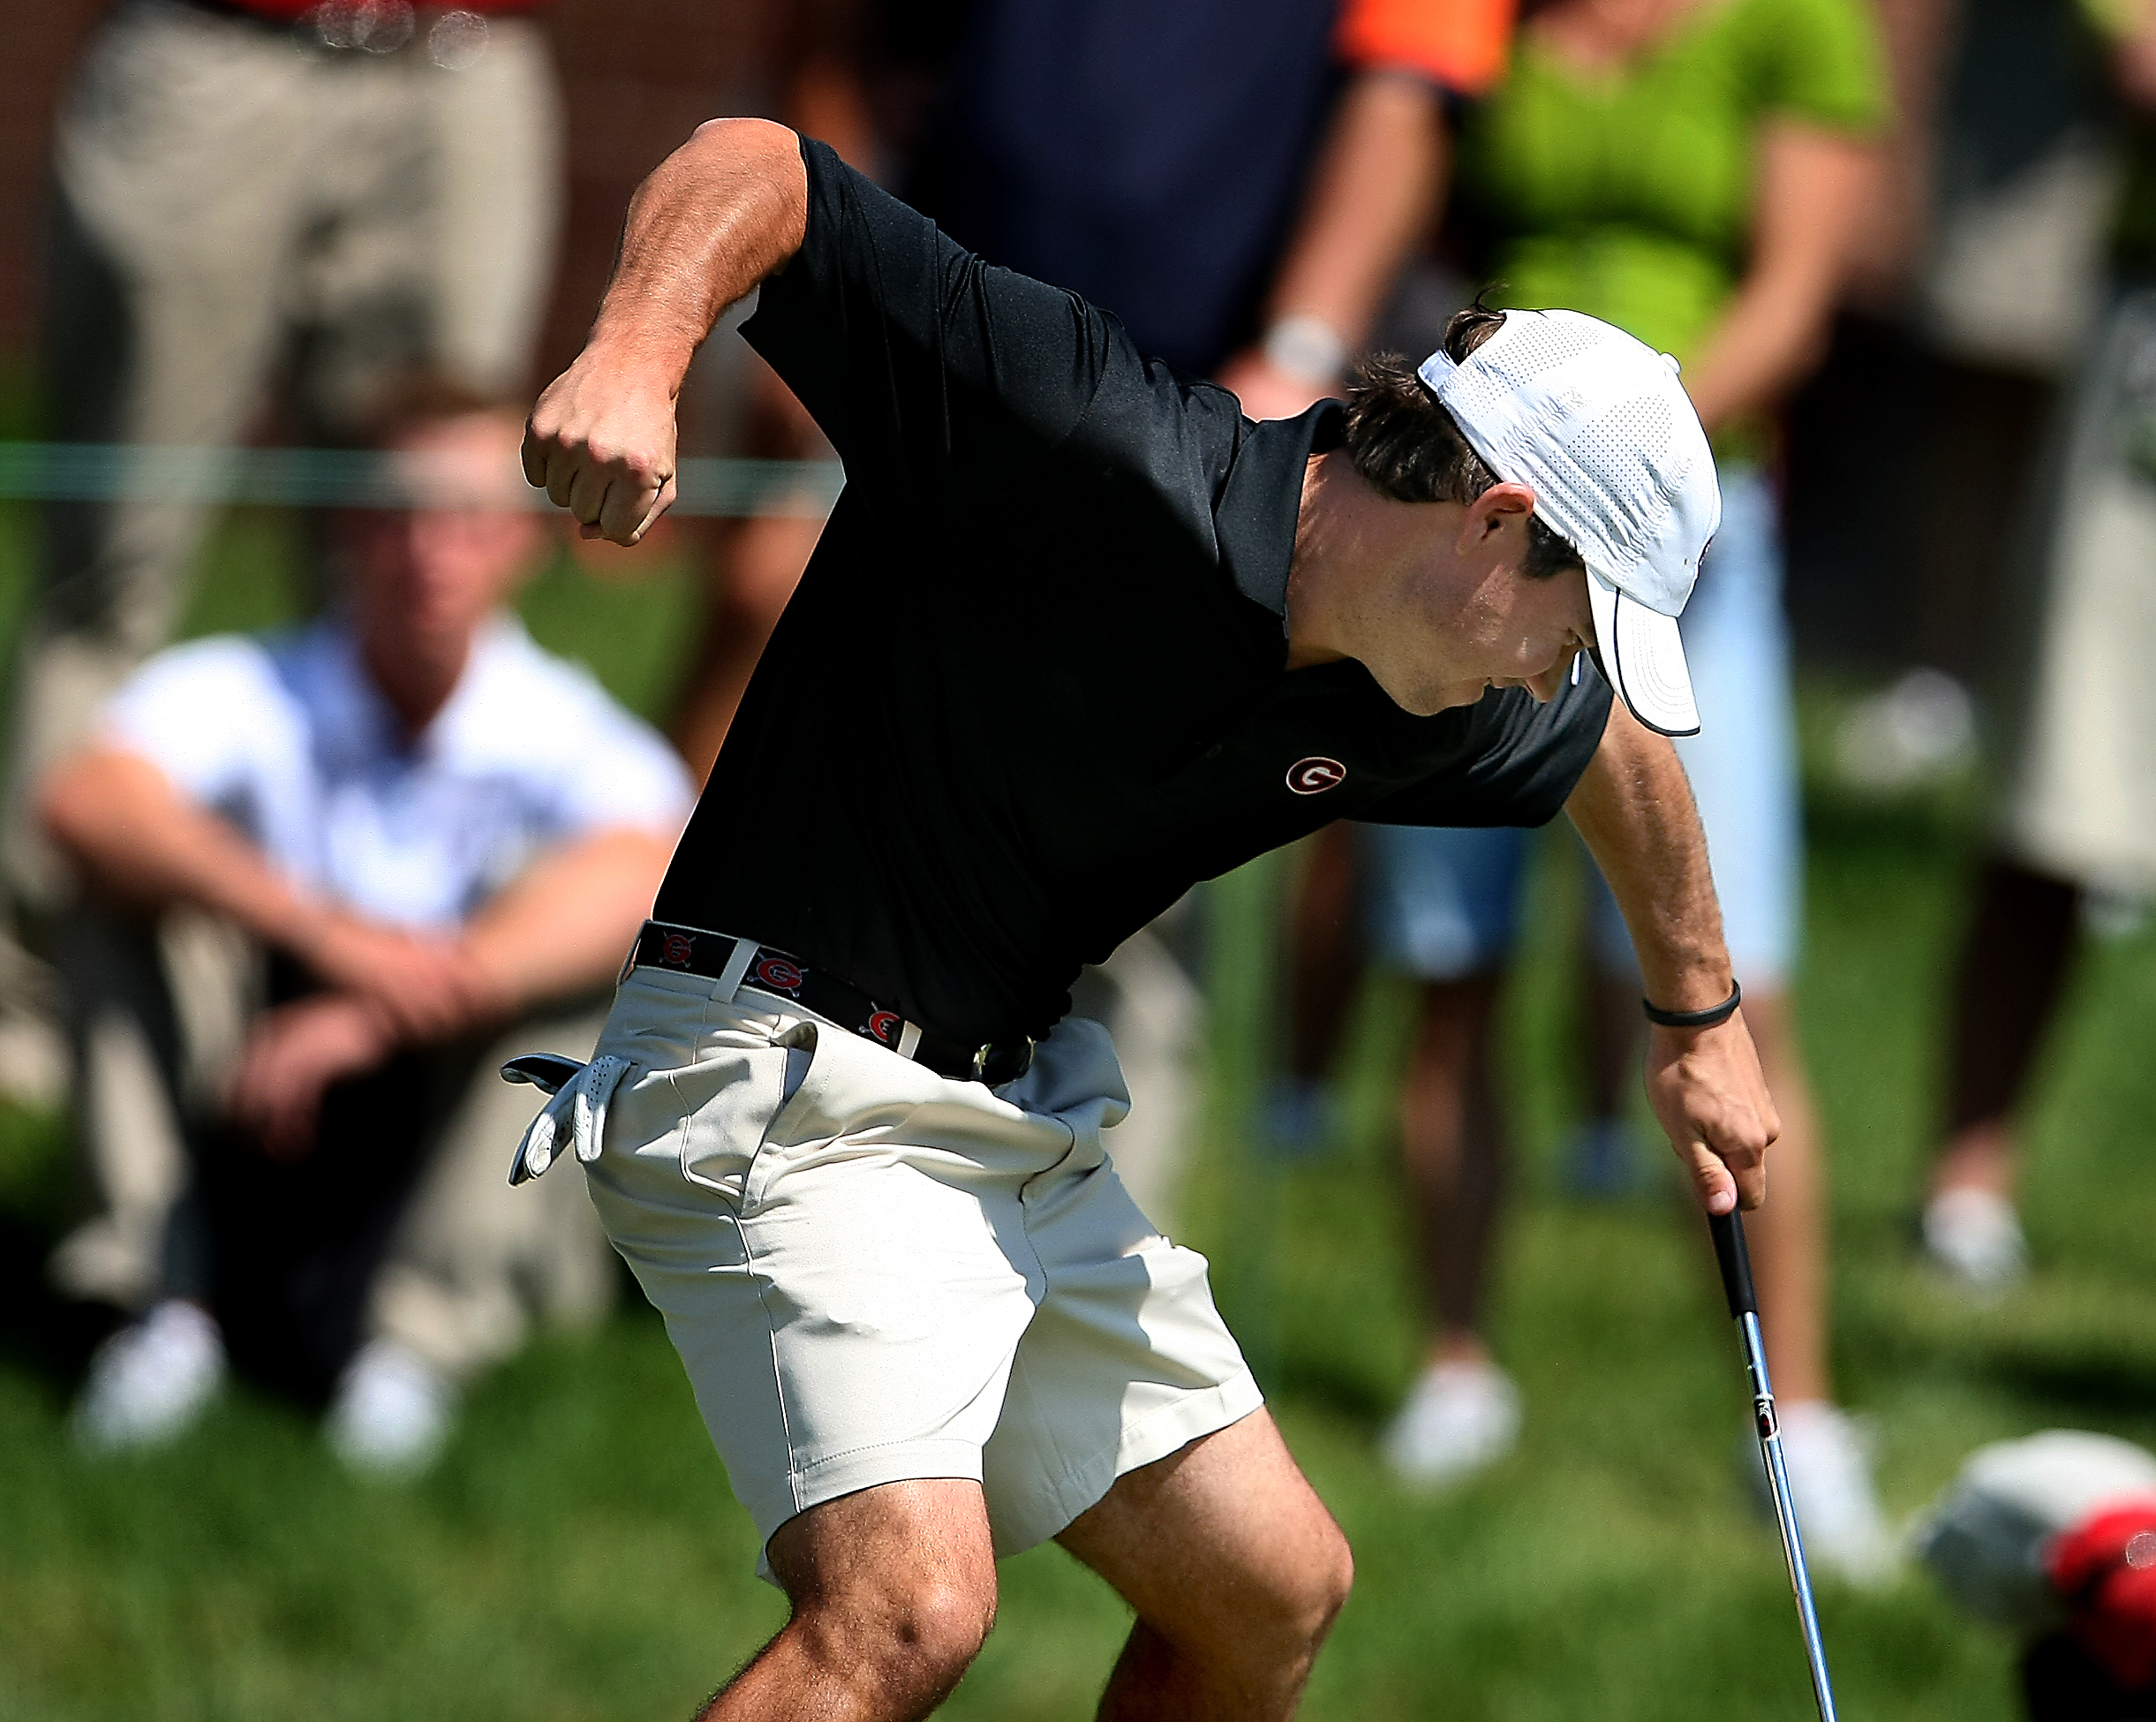 Brian Harman unleashes a fierce fist pump on the 18th green at the NCAA Championship this year.